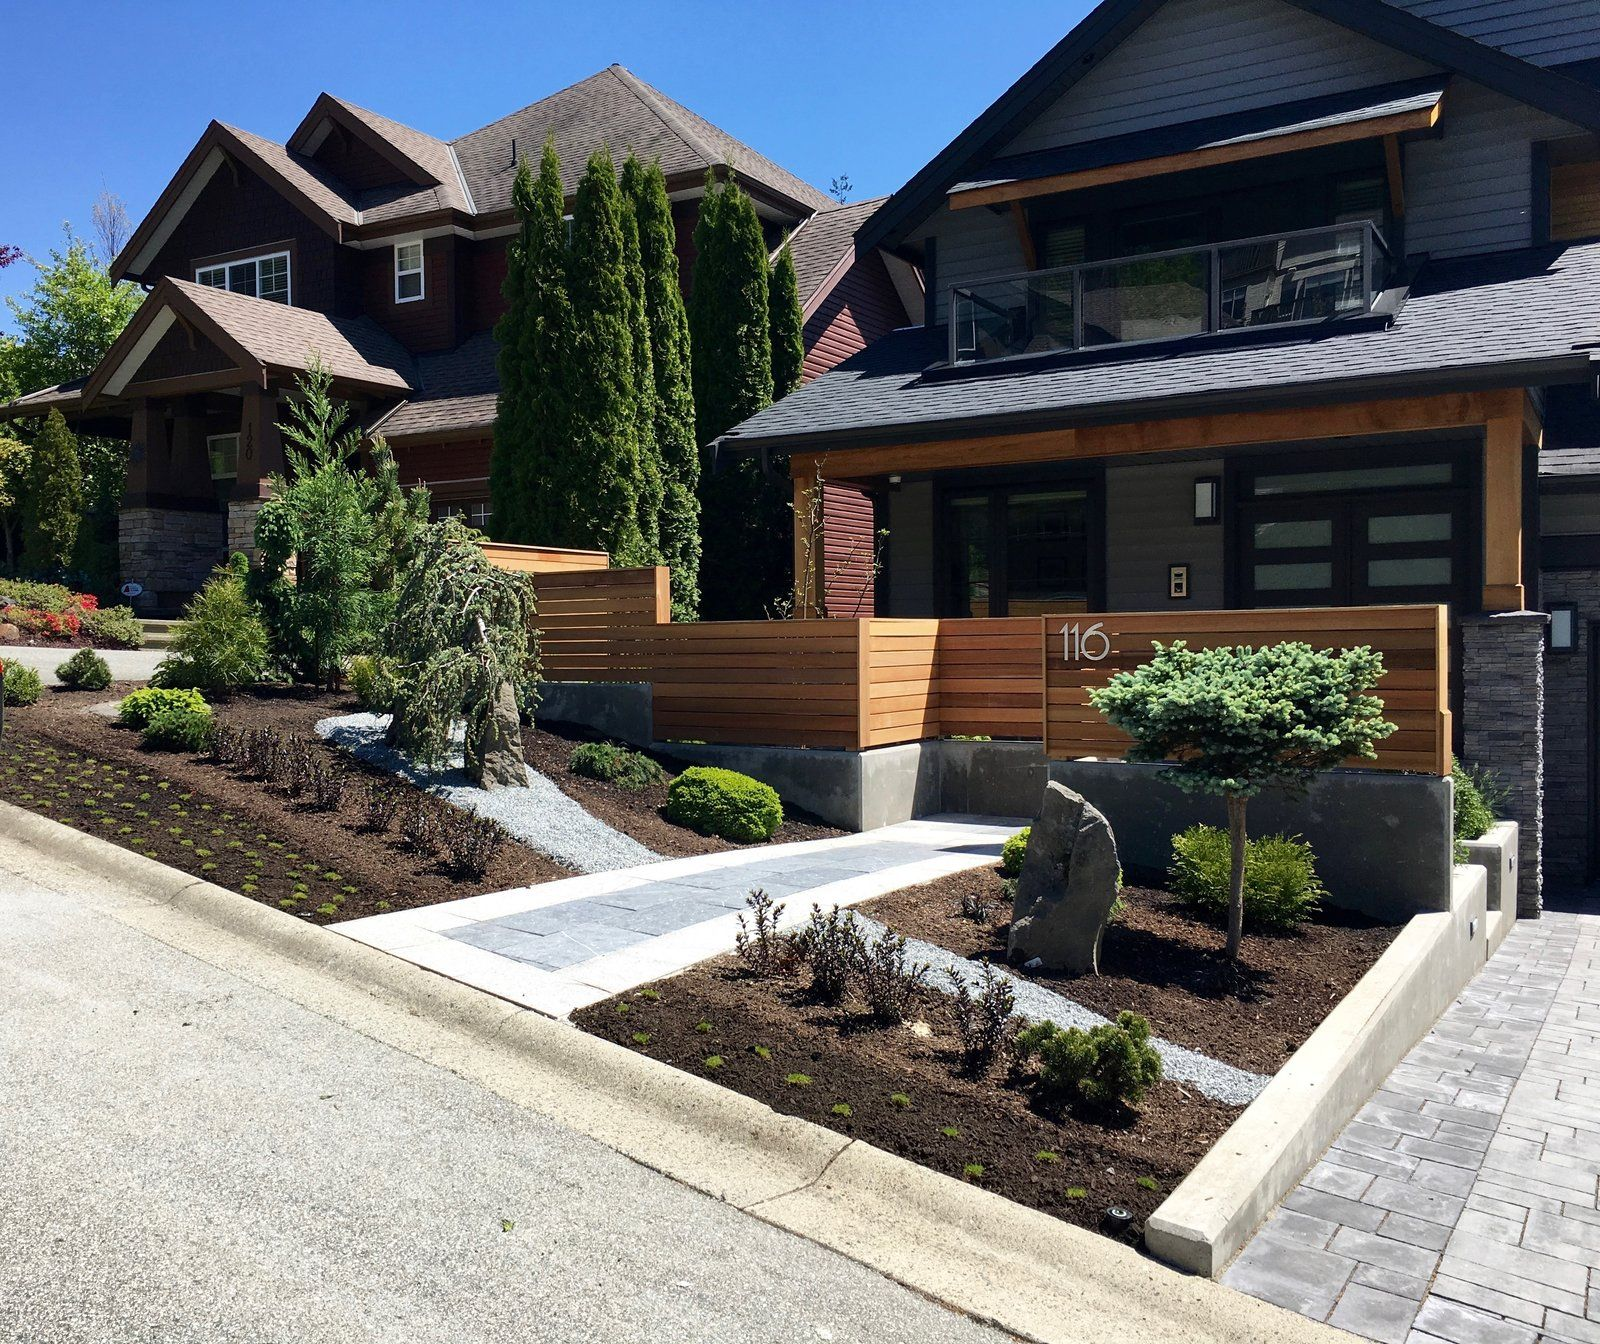 Modern Front Yard: Modern Home With Outdoor, Front Yard, Slope, Trees, Shrubs